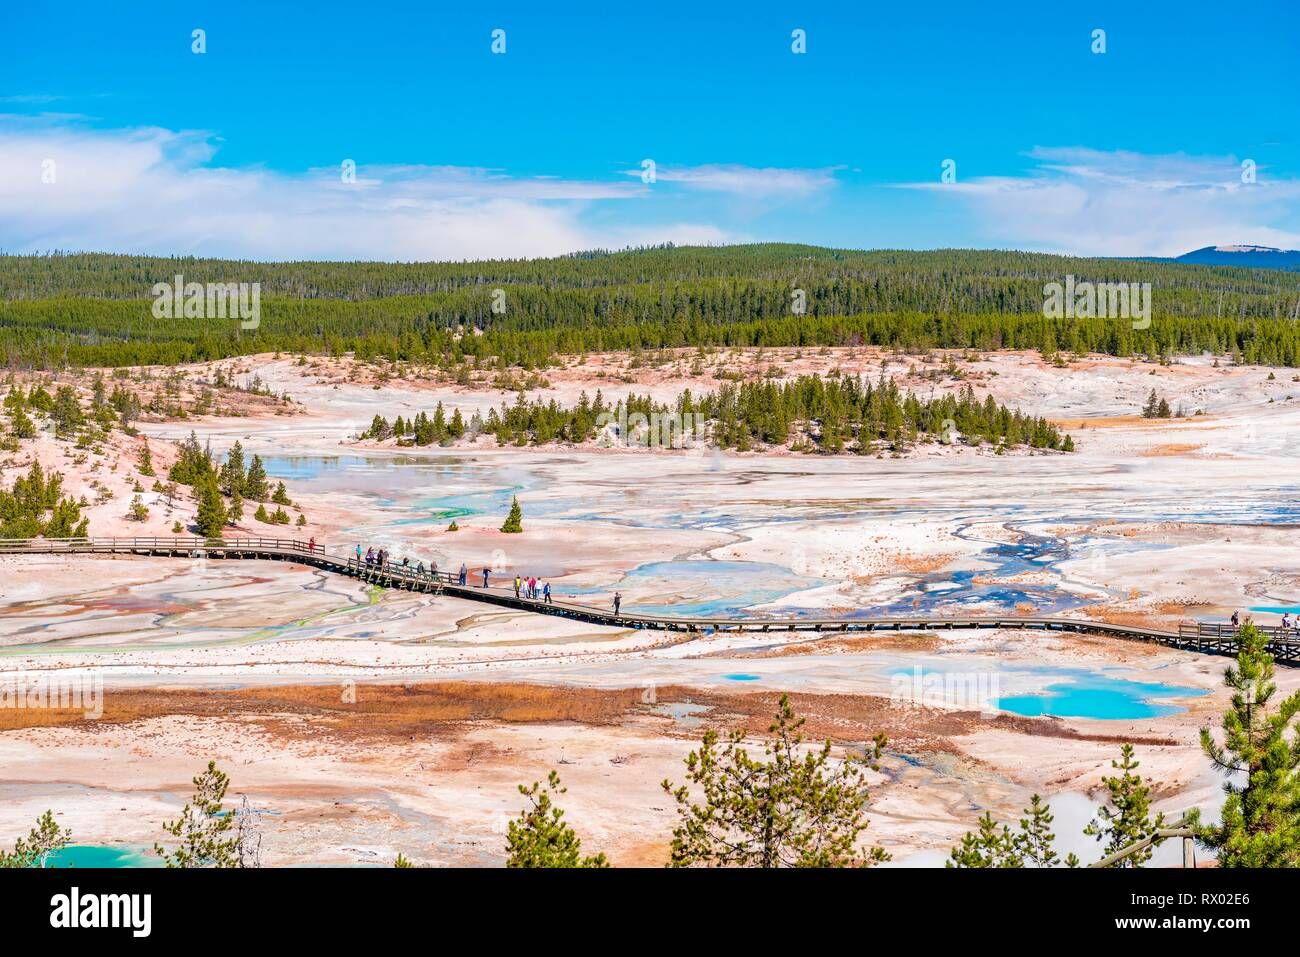 Geysers and hot springs, mineral deposits, view of Norris Back Basin with trail for tourists, Noris Geyser Basin - Stock Image